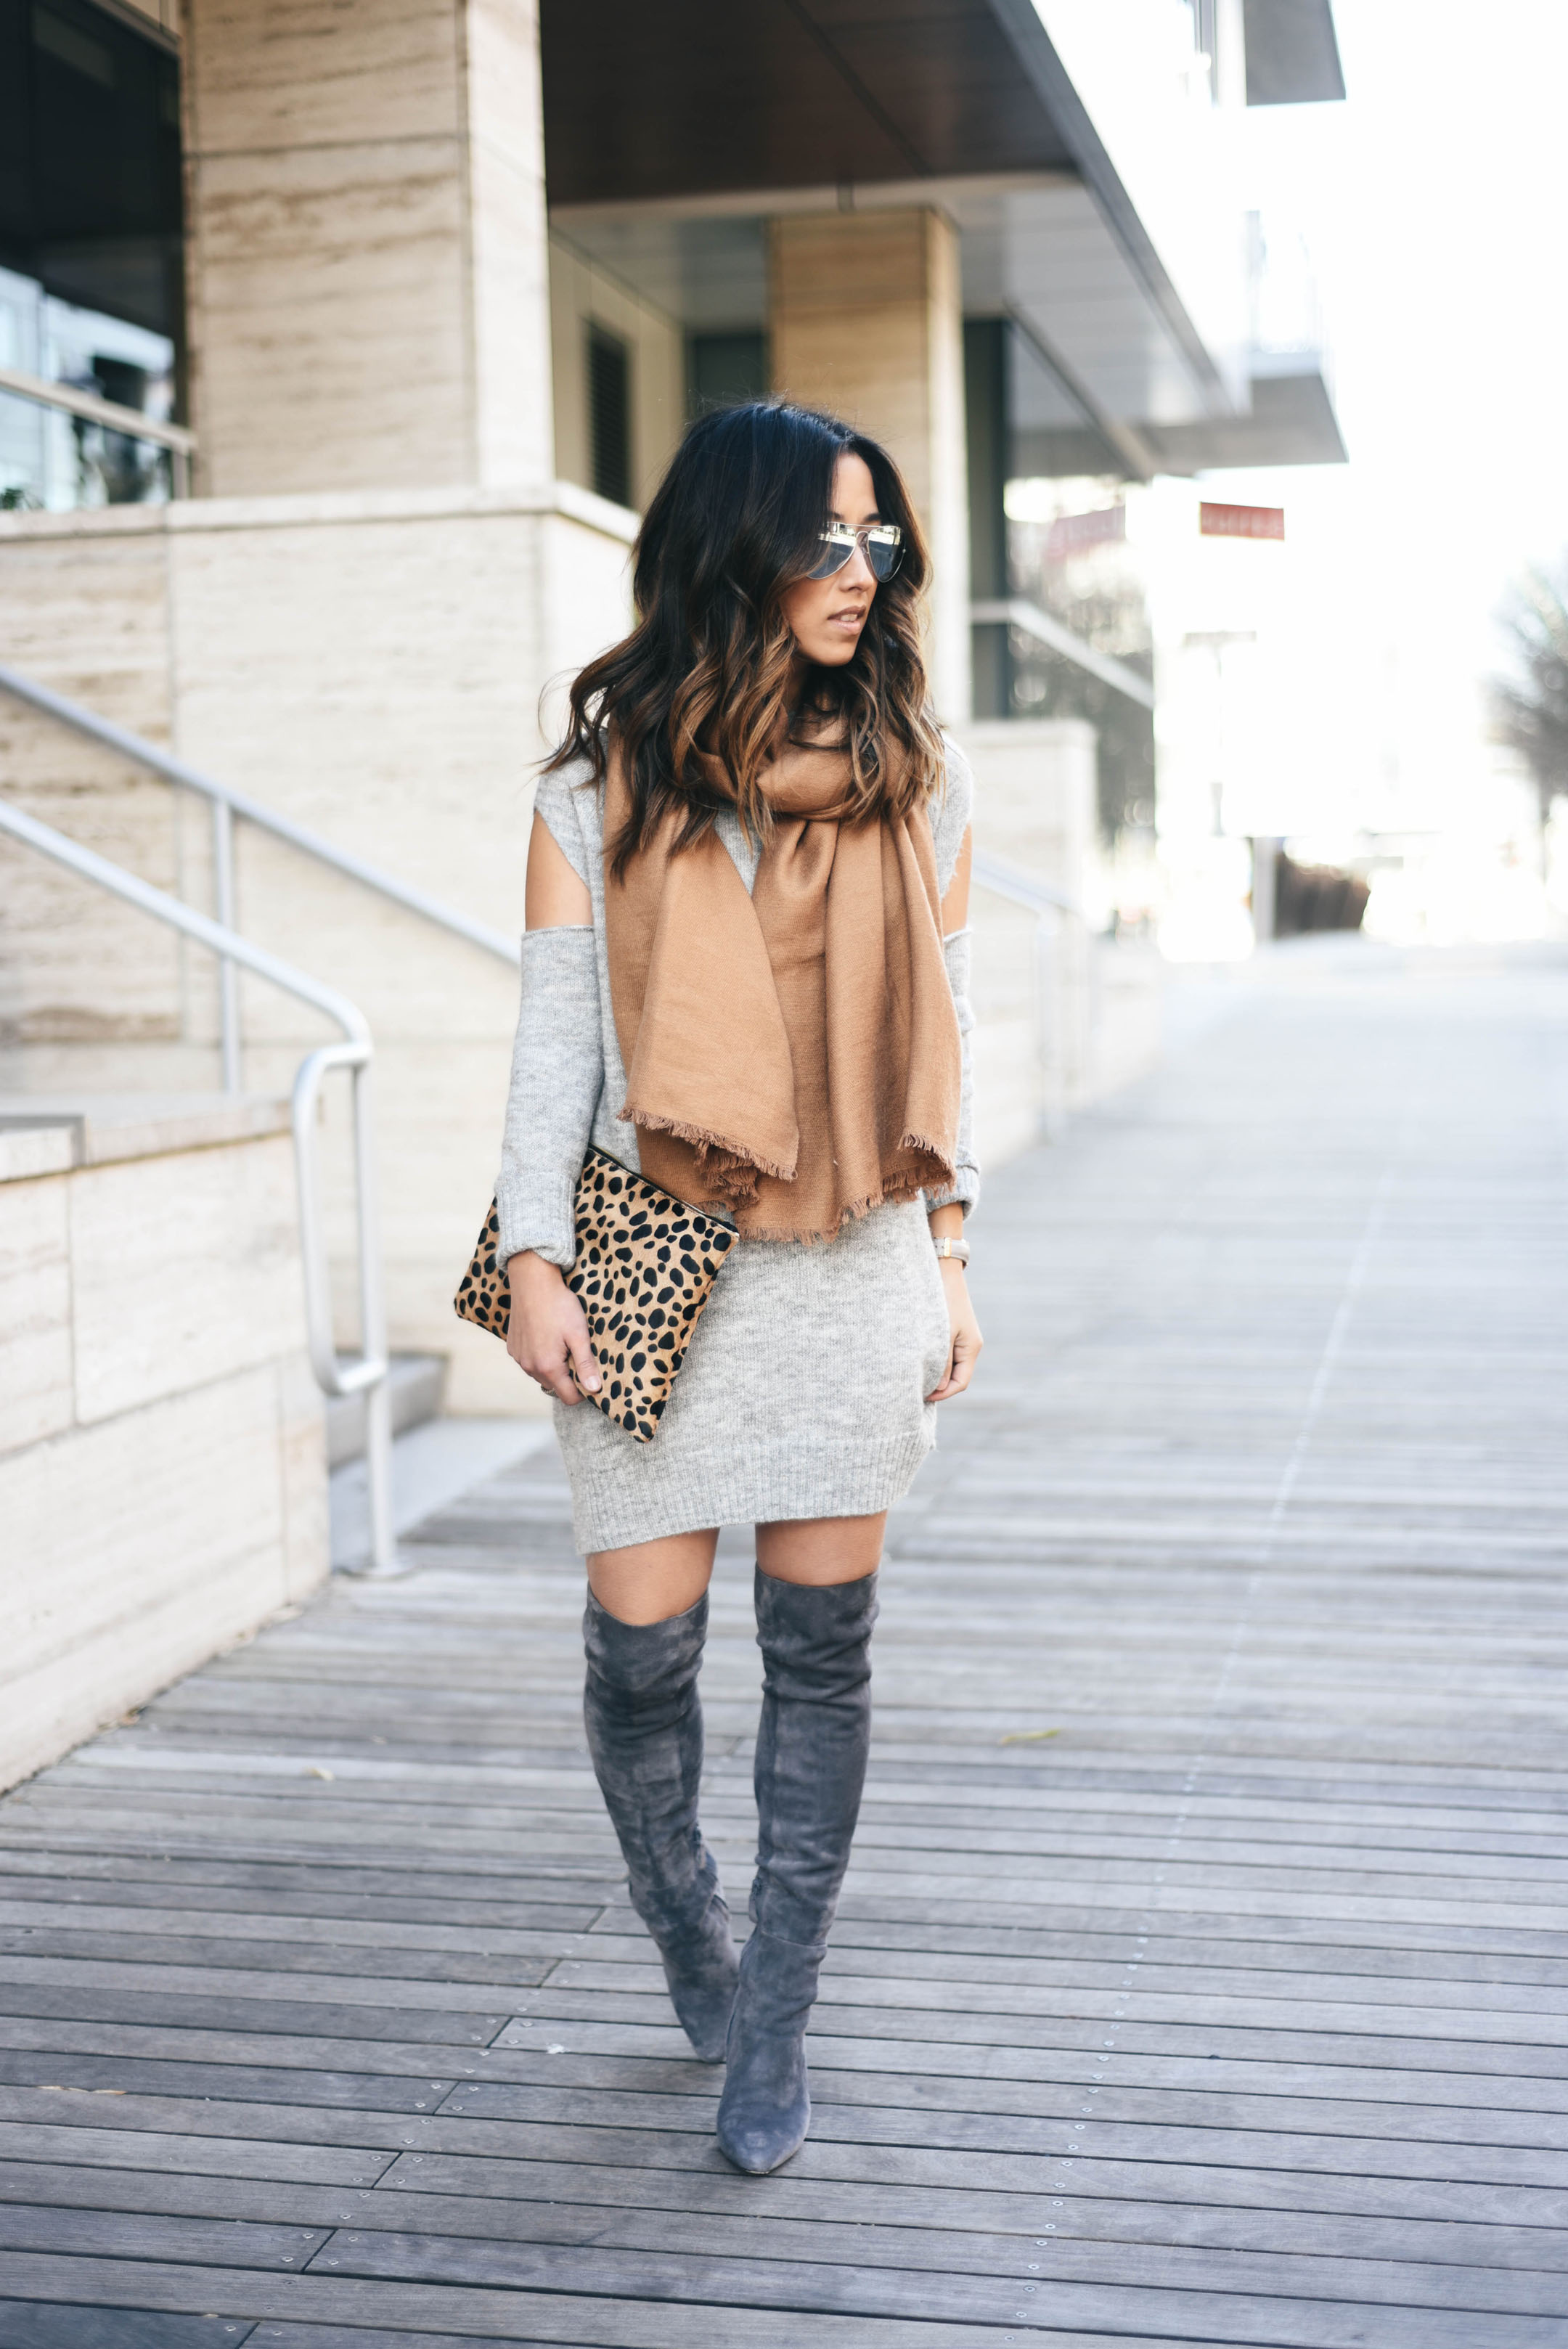 hm-gray-sweater-dress